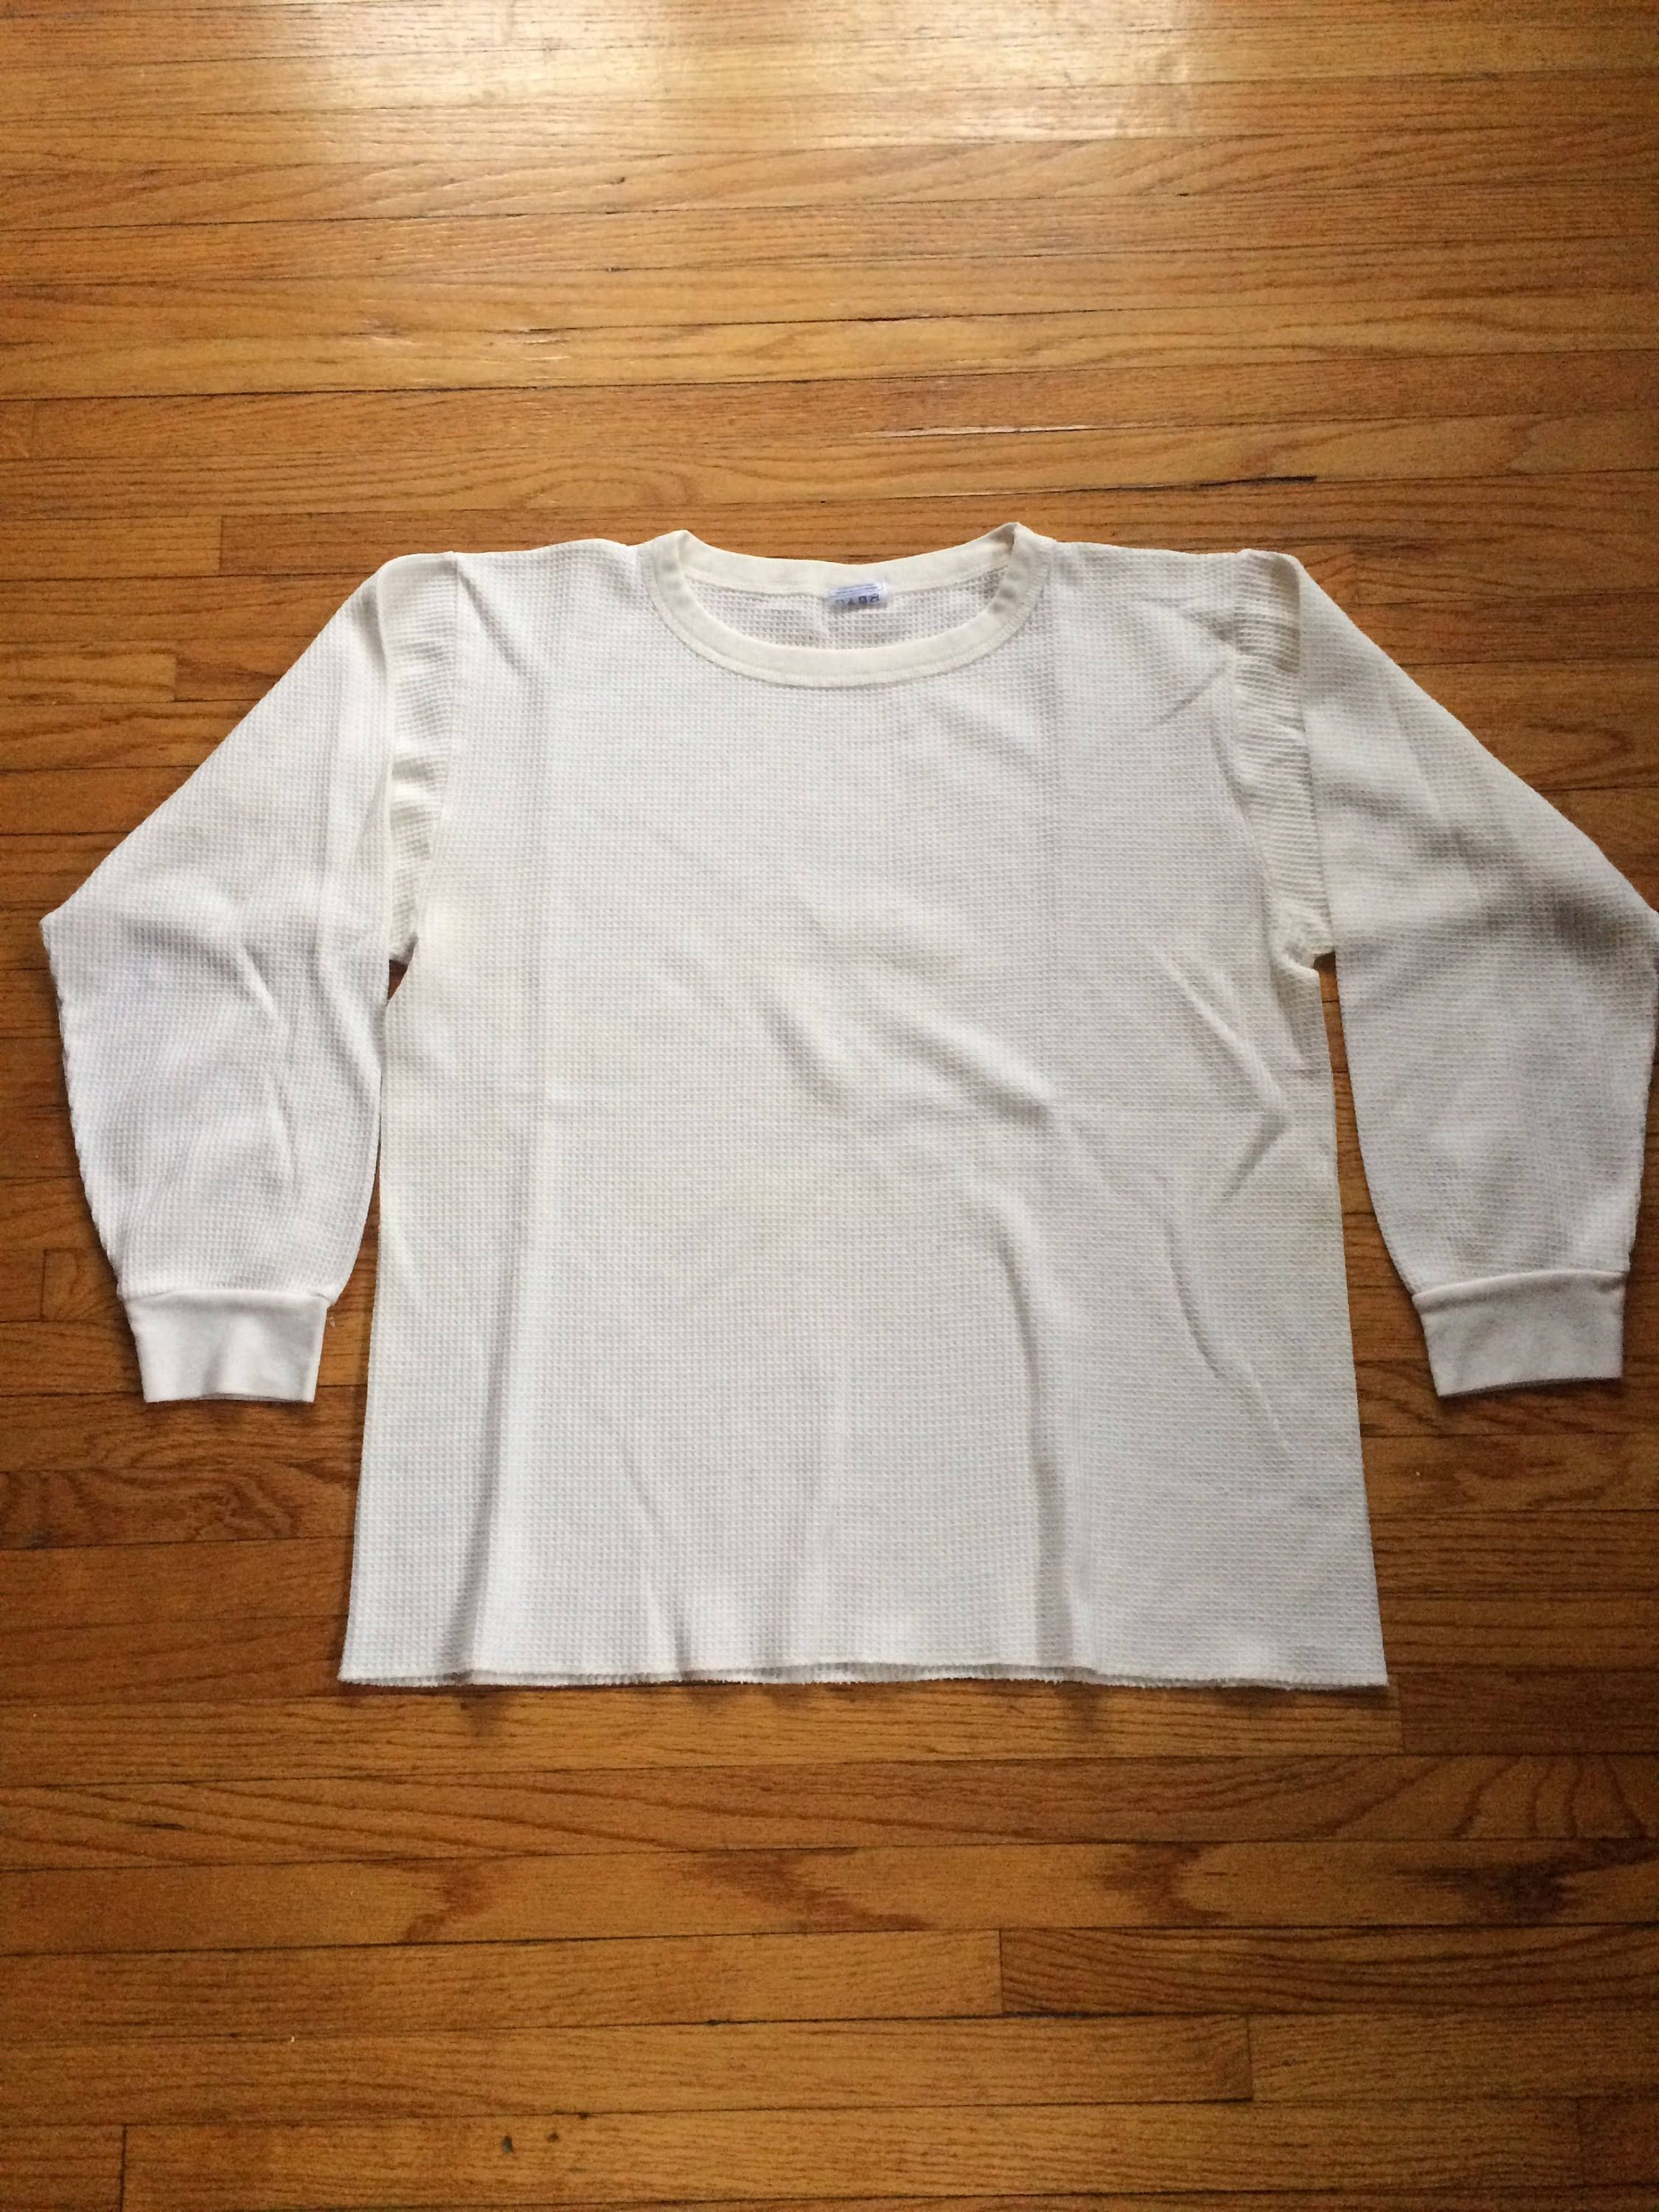 Vintage Fruit of the Loom White Long Sleeve Thermal Top by